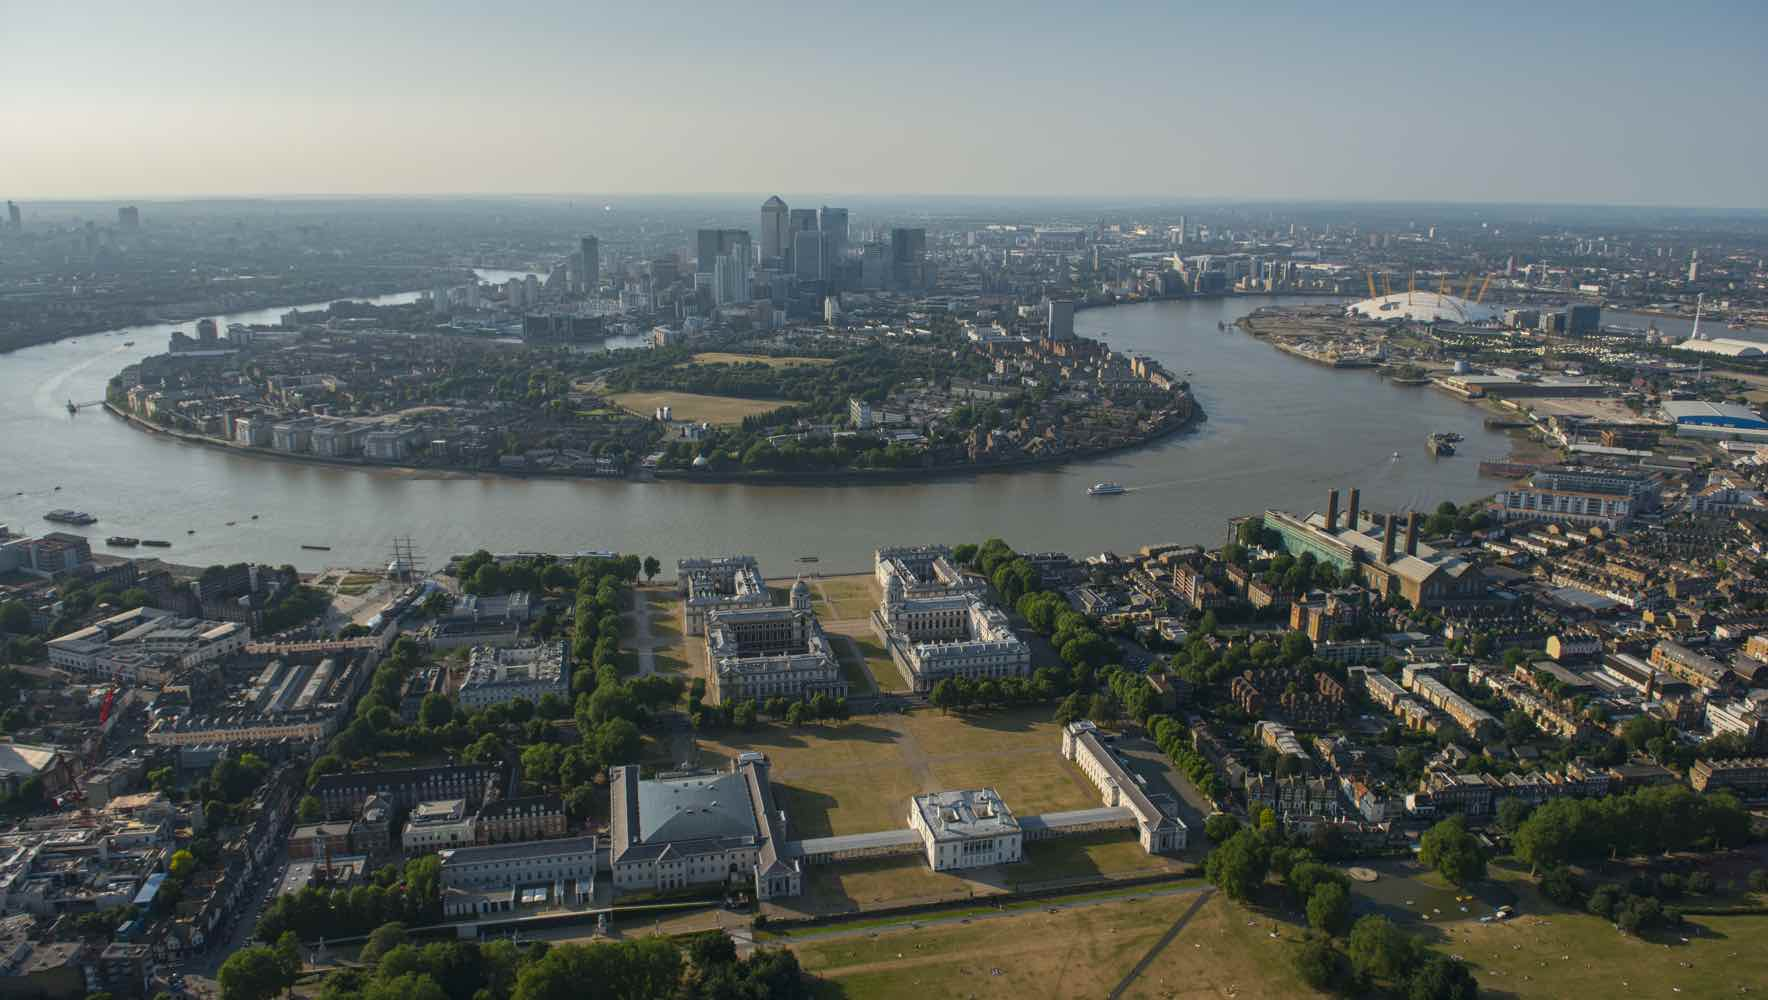 View over London, the River Thames and the historic buildings and parks of Greenwich. The Old Royal Naval College, maritime Greenwich heritage site